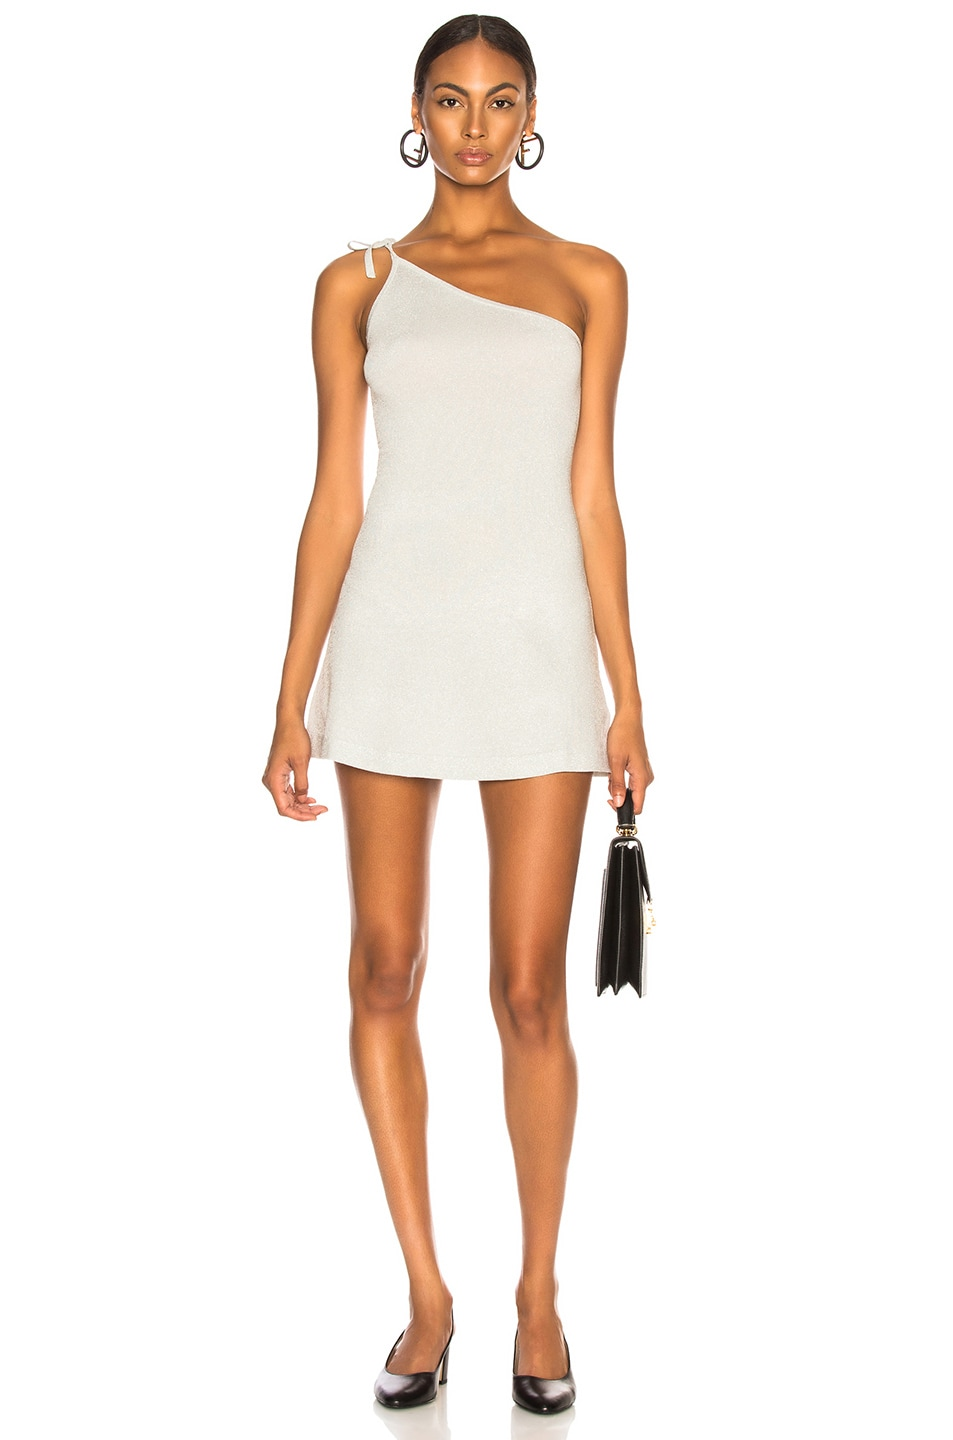 Image 1 of JoosTricot Asymmetric Dress in Silver White Lurex